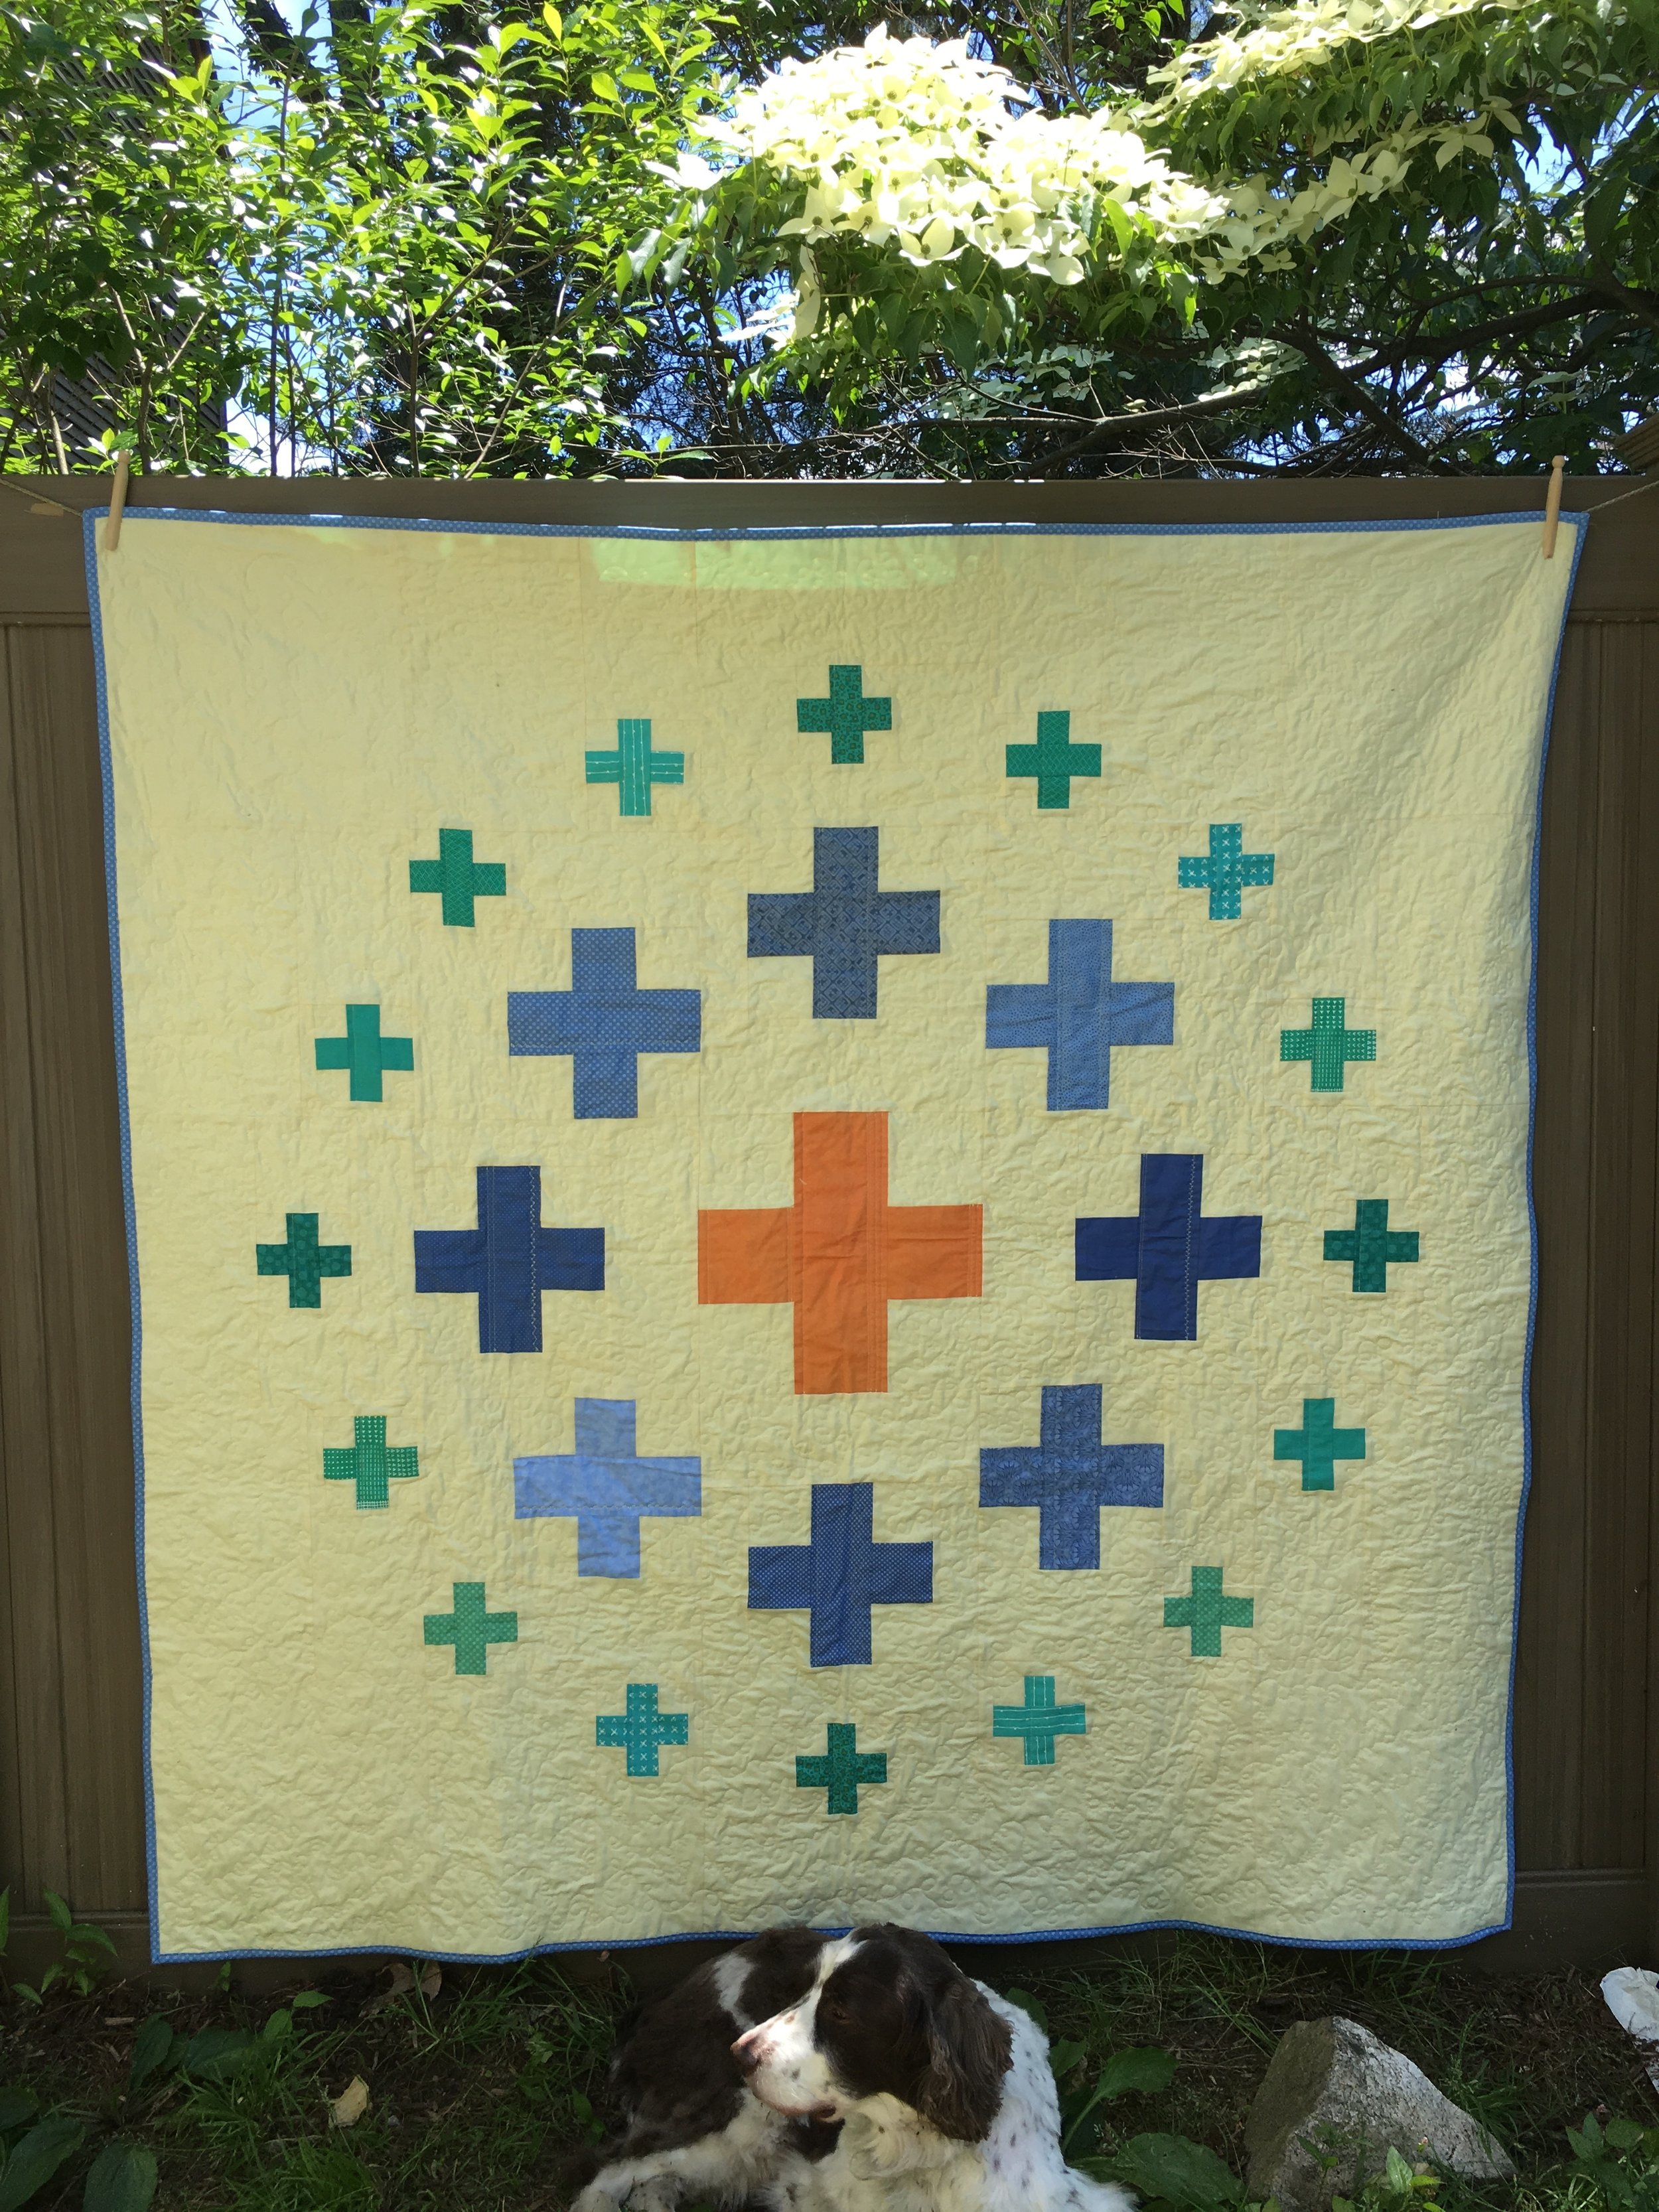 Here's a photo of the quilt before washing.